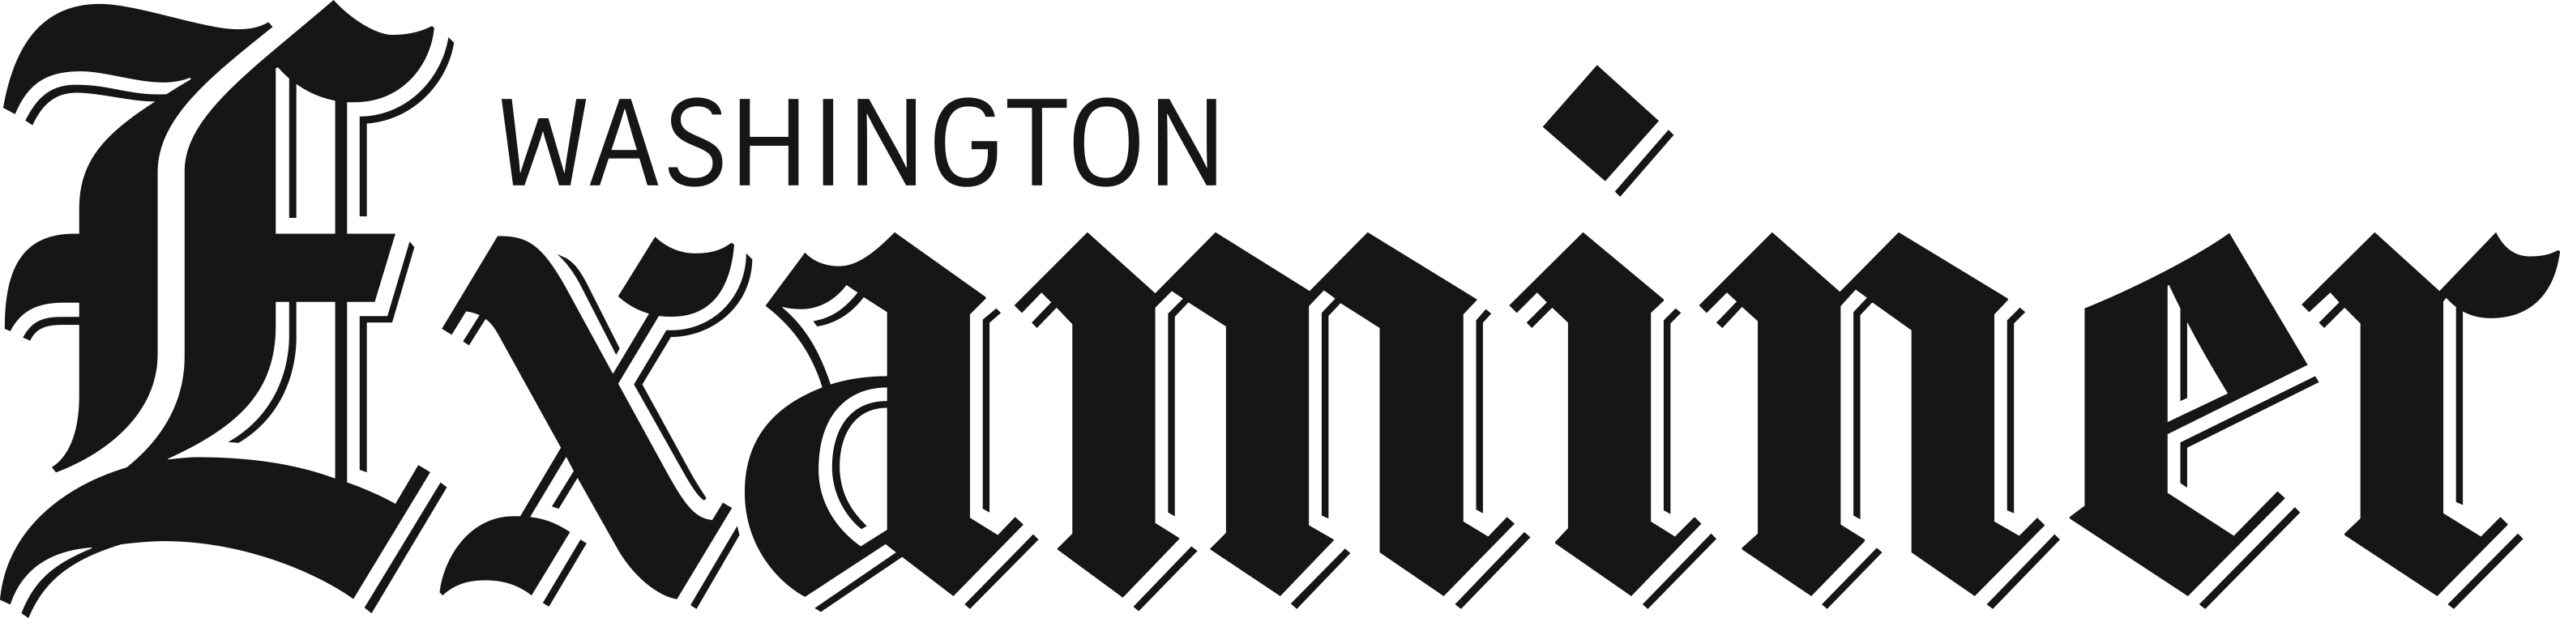 Logotipo del Washington Examiner